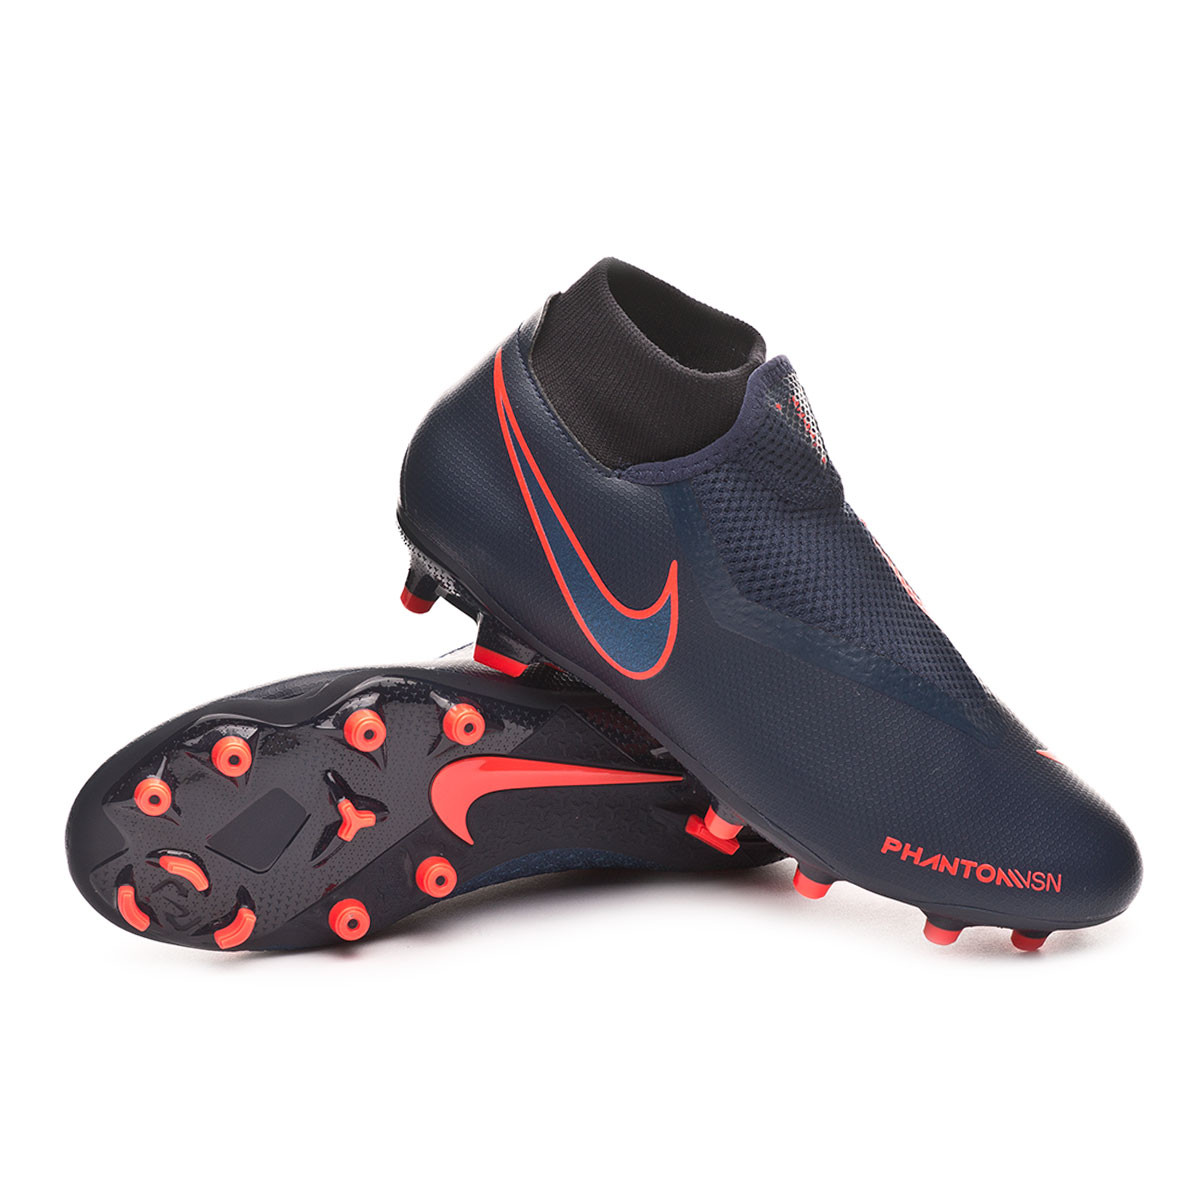 2f066d6a684 Football Boots Nike Phantom Vision Academy DF FG MG Obsidian-Black-Bright  crimson - Football store Fútbol Emotion